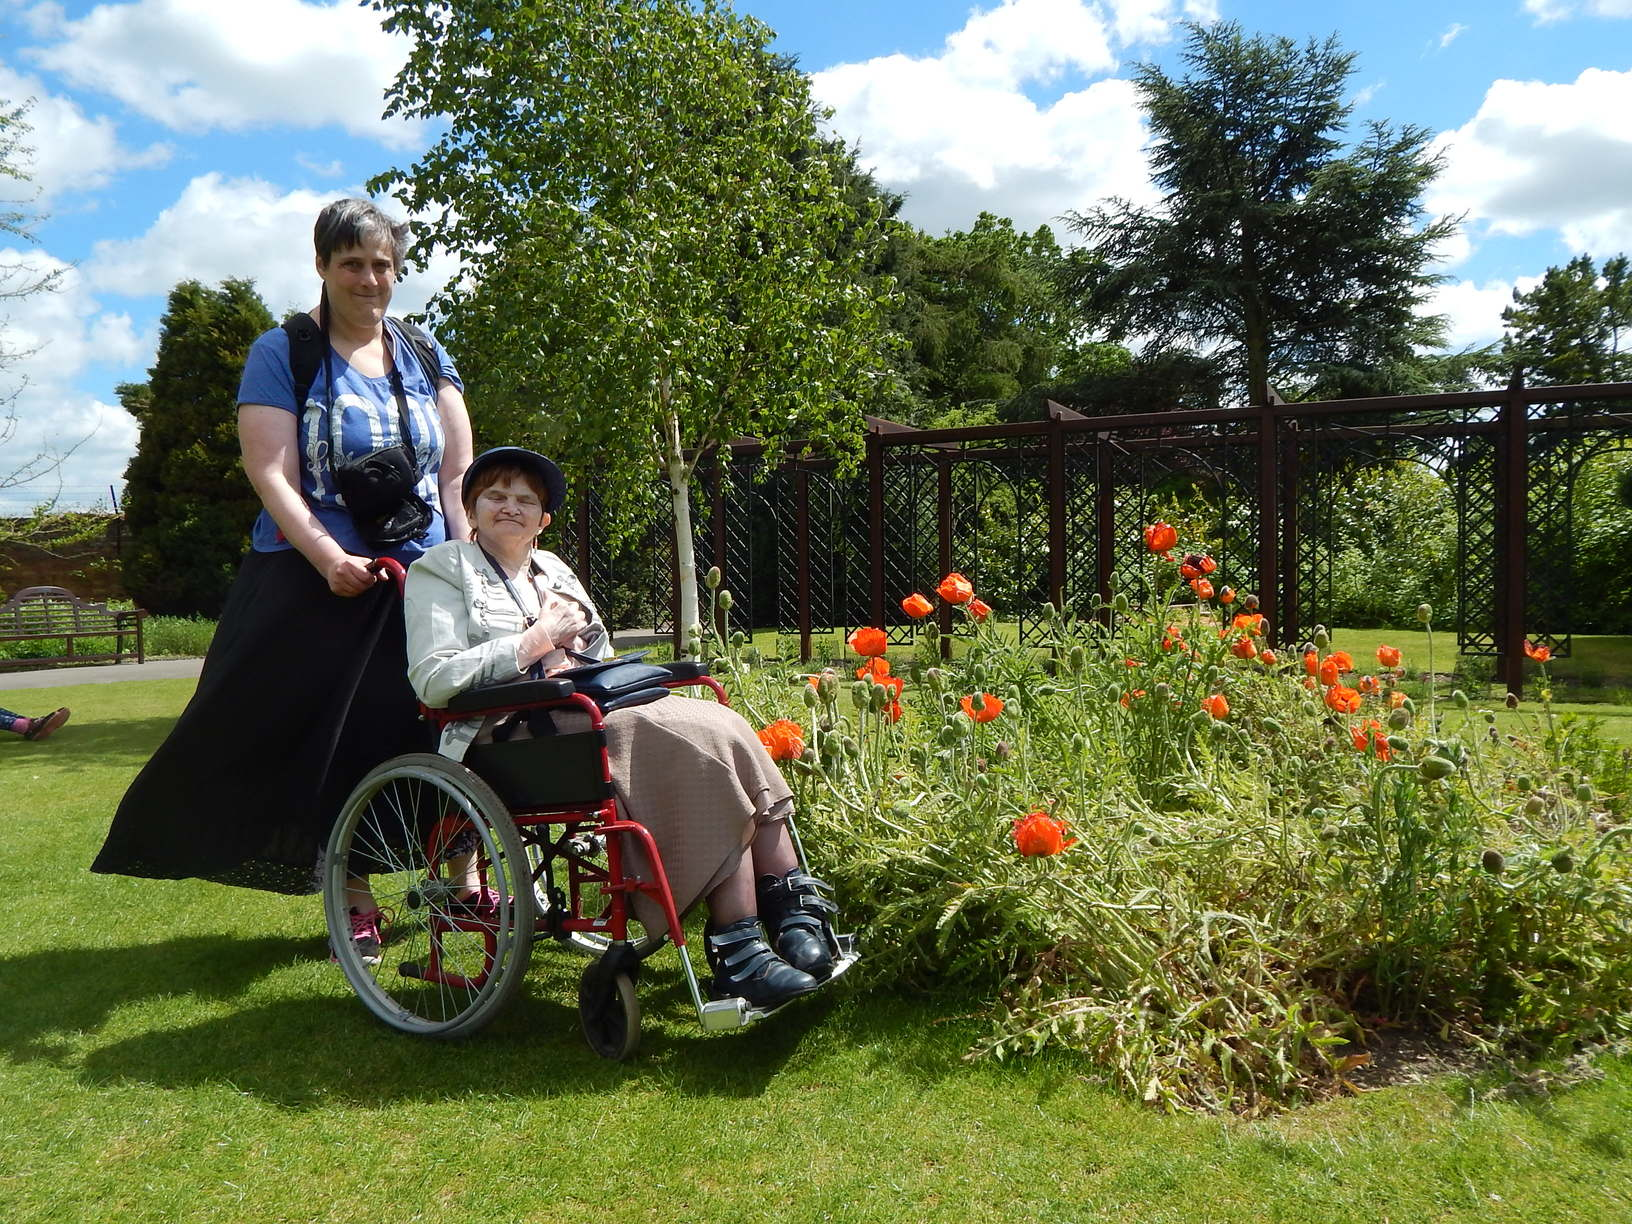 Two people, one in a wheelchair, enjoying a leisurely walk through a pretty garden.